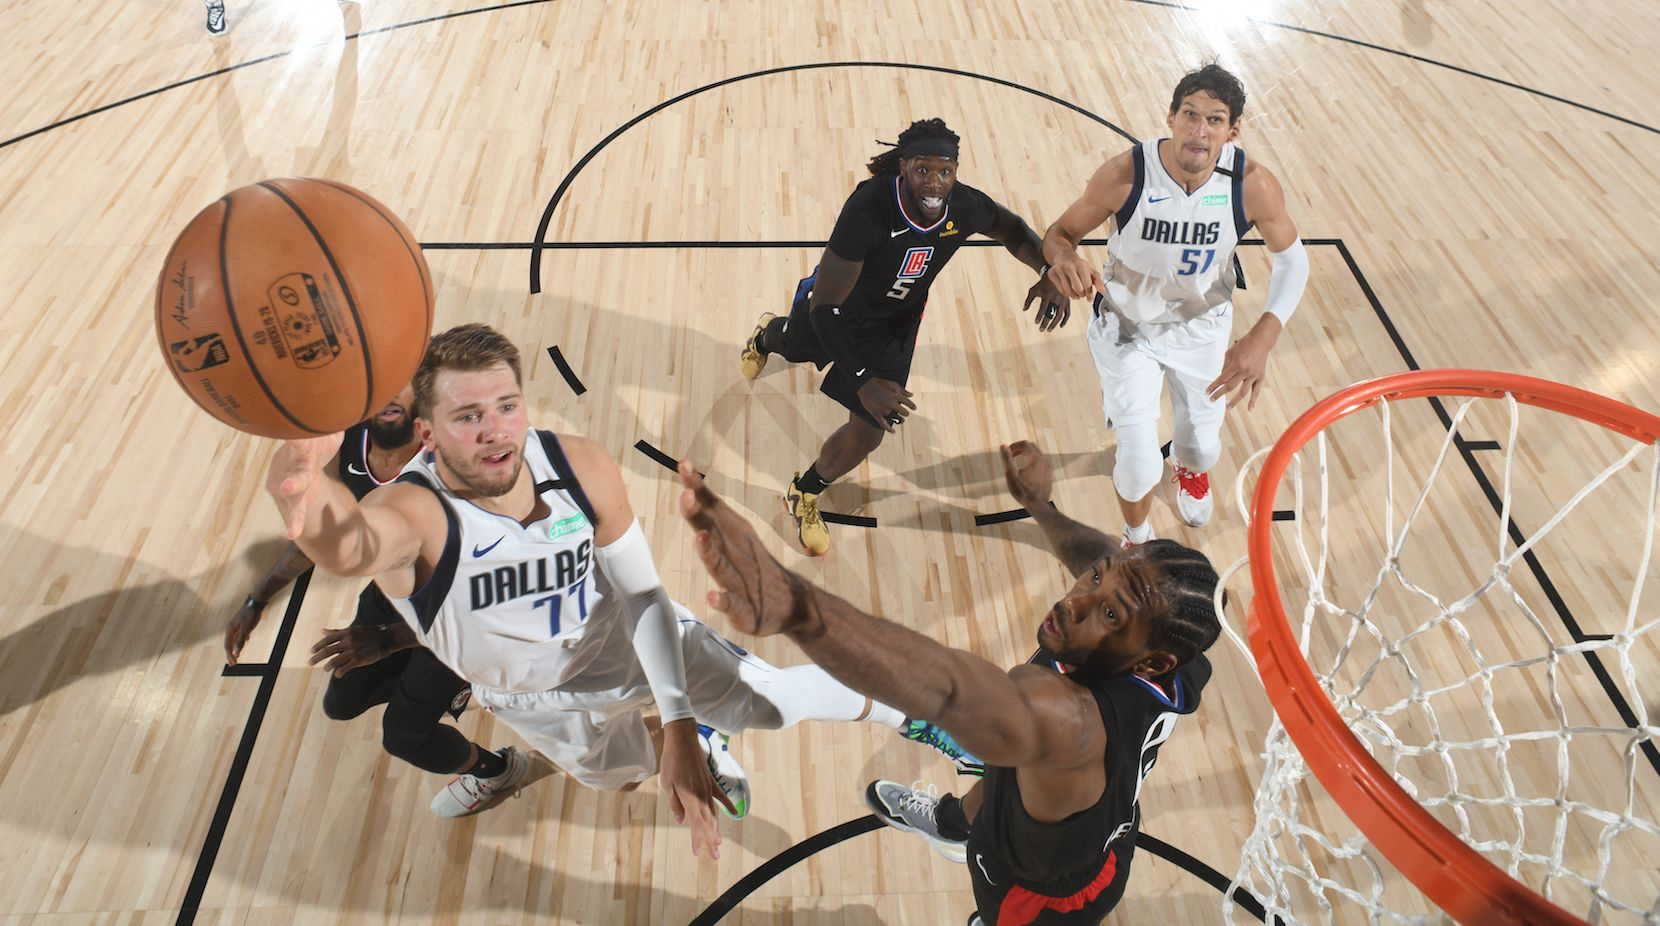 Los Angeles Clippers' Kawhi Leonard (2) fouls Dallas Mavericks' Luka Doncic (77) during the second half of an NBA first round playoff game Sunday, Aug. 30, 2020, in Lake Buena Vista, Fla.